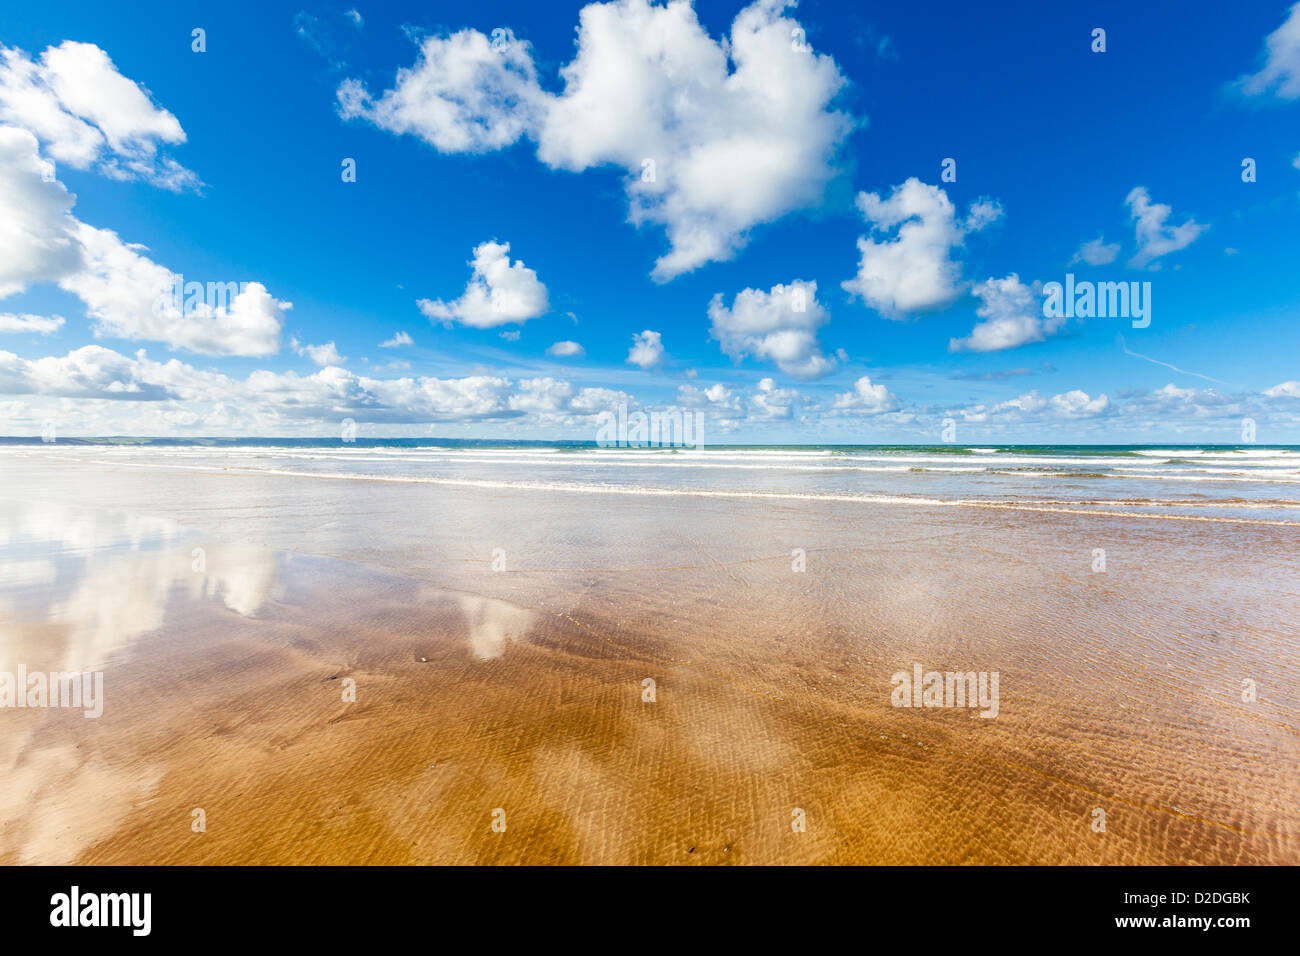 Empty beach with fluffy clouds reflected in the wet sand, Saunton Sands in North Devon, UK. Stock Photo